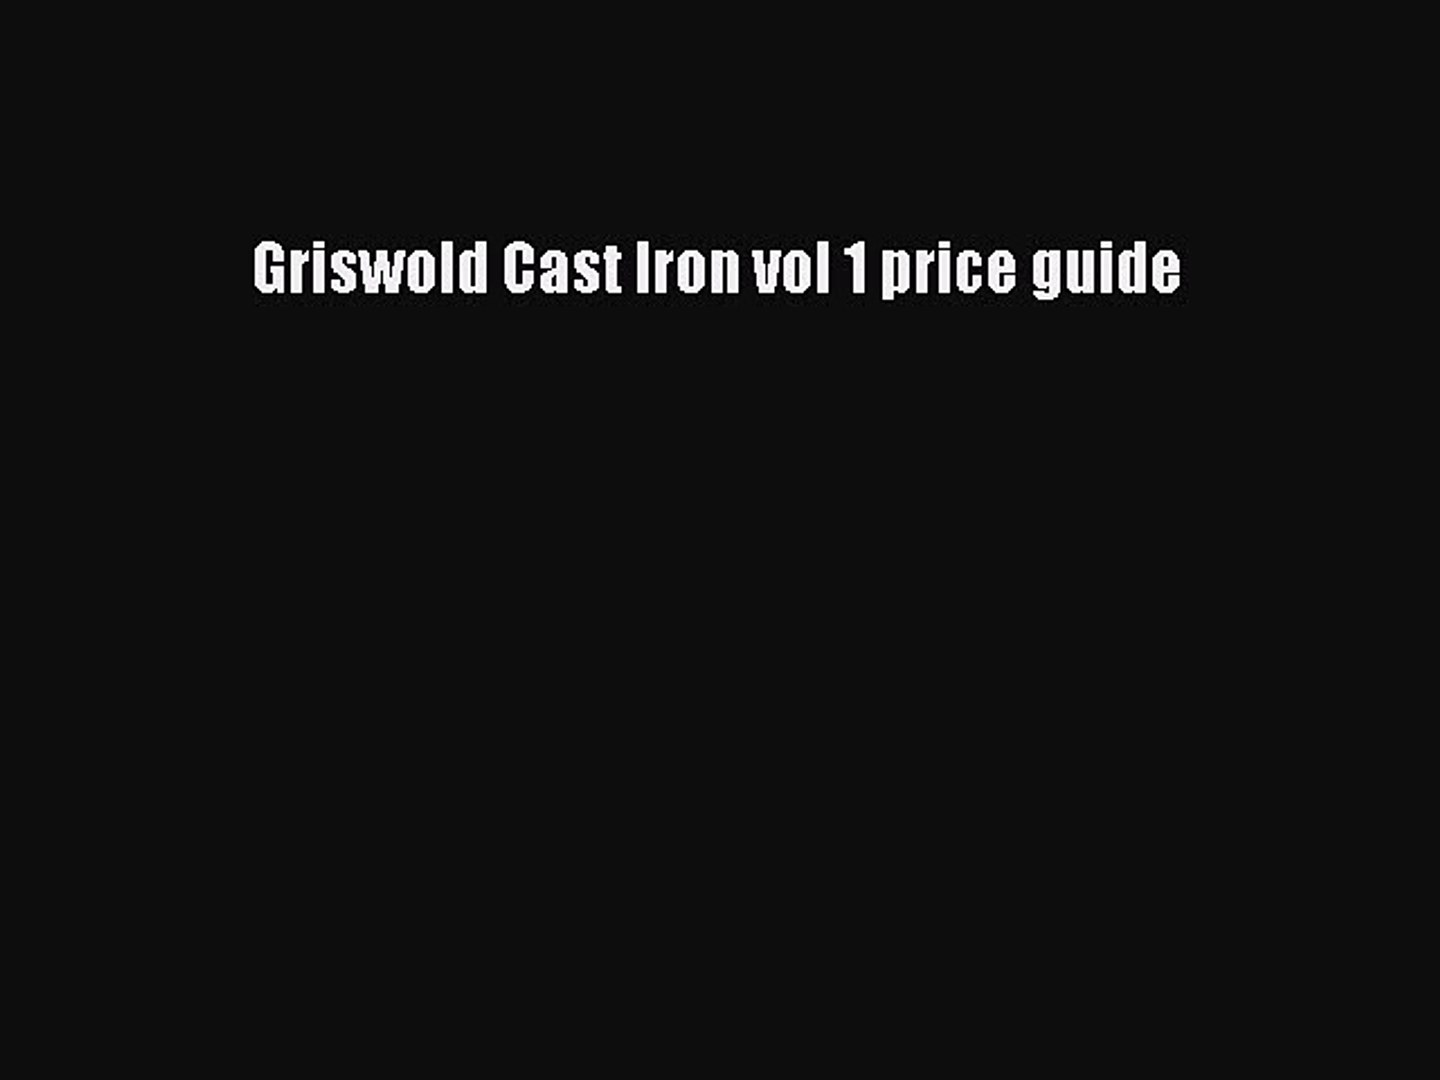 Pdf Telecharger Griswold Cast Iron Vol 1 Price Guide Telecharger Complet Ebook Pdf Telecharger Video Dailymotion